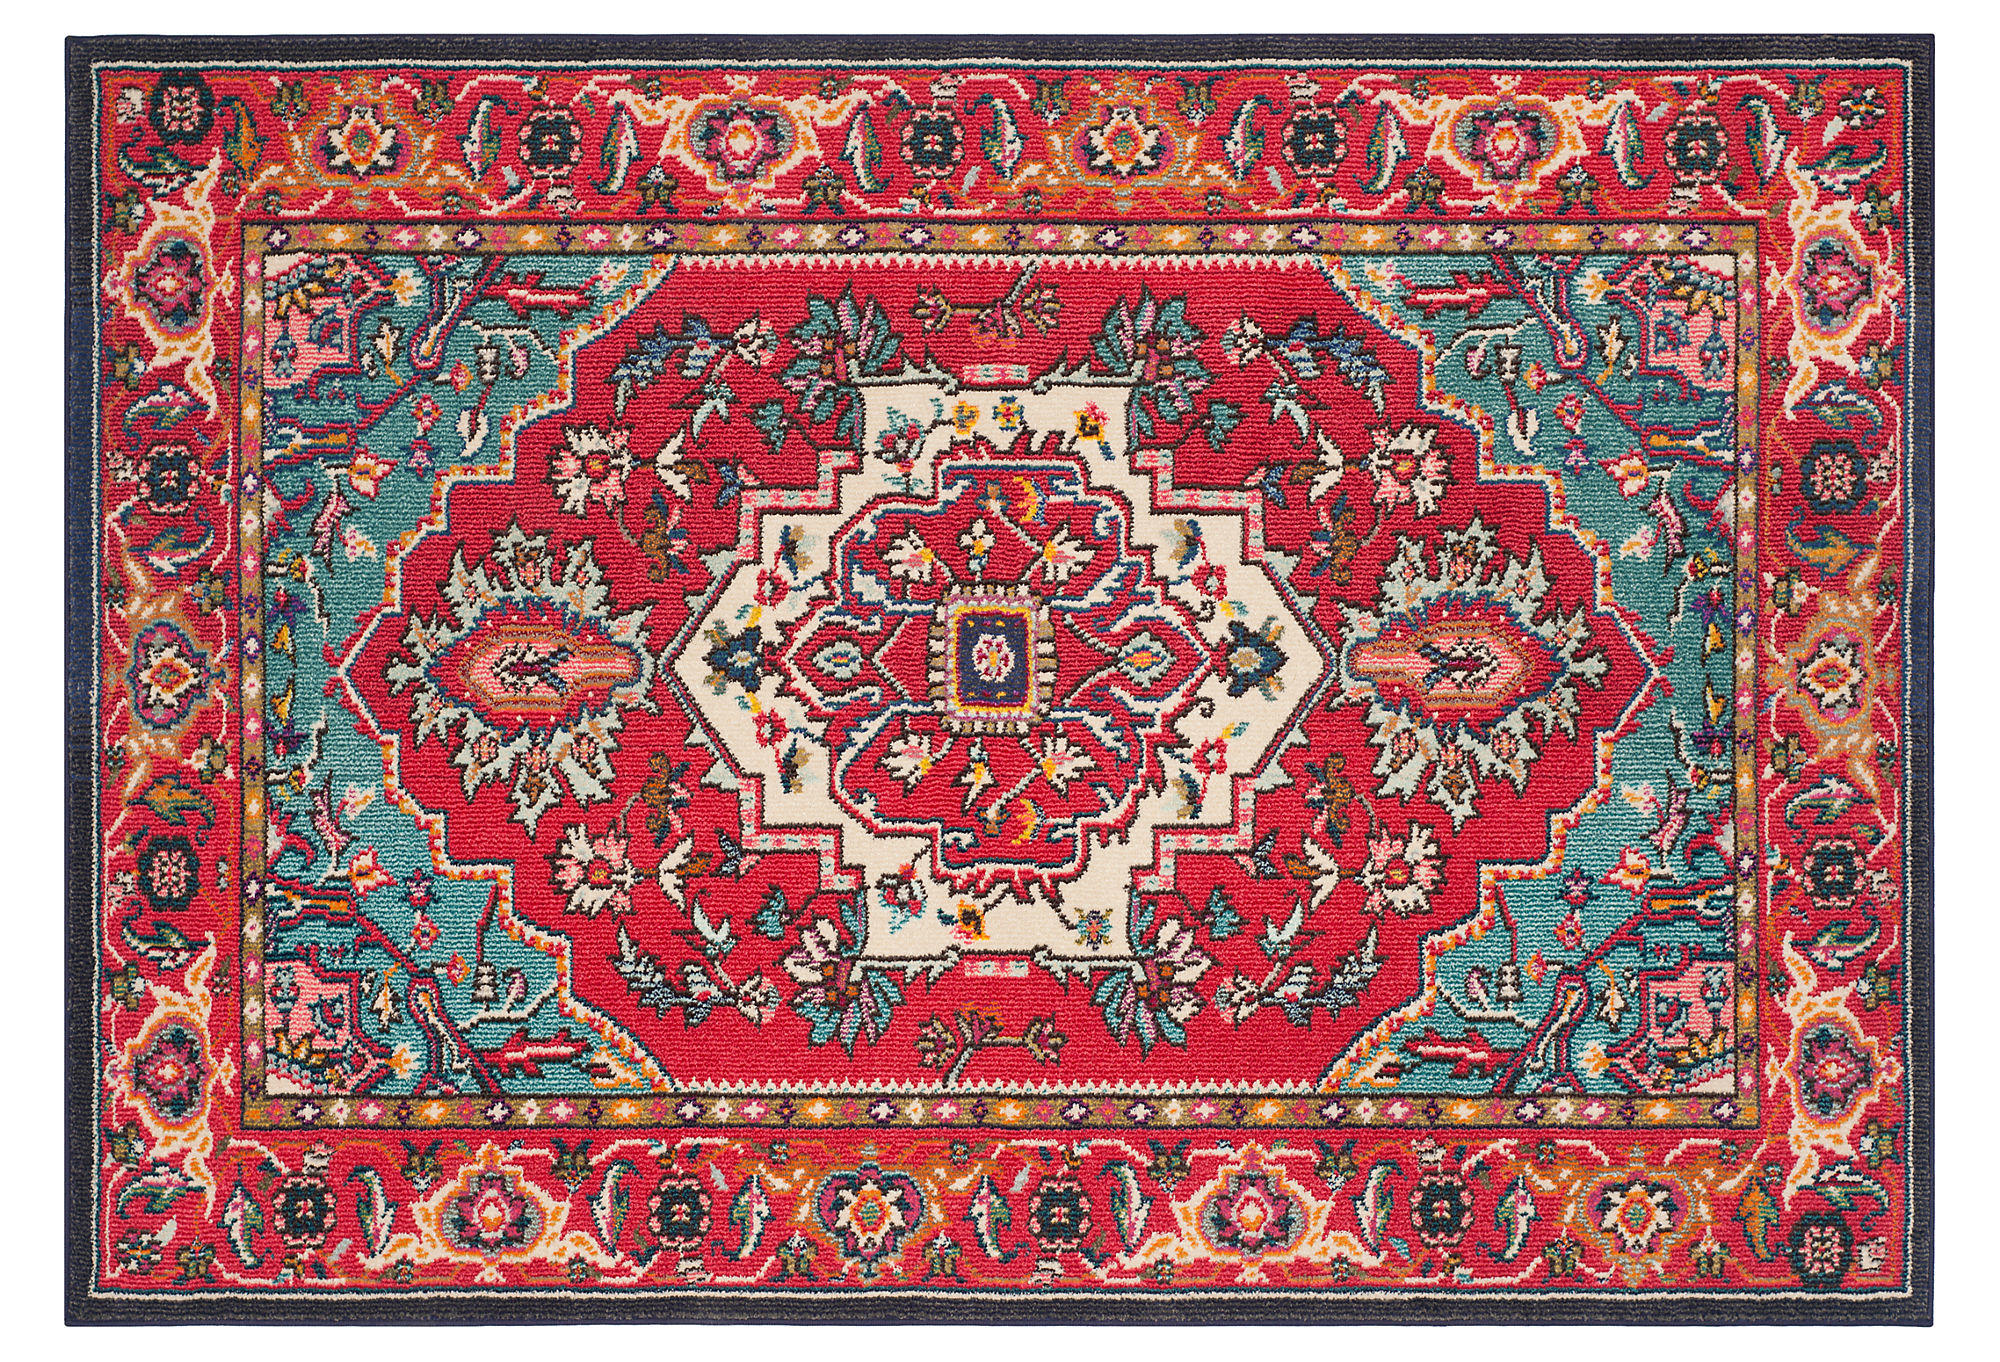 noella runner red turquoise area rugs from one kings lane. Black Bedroom Furniture Sets. Home Design Ideas